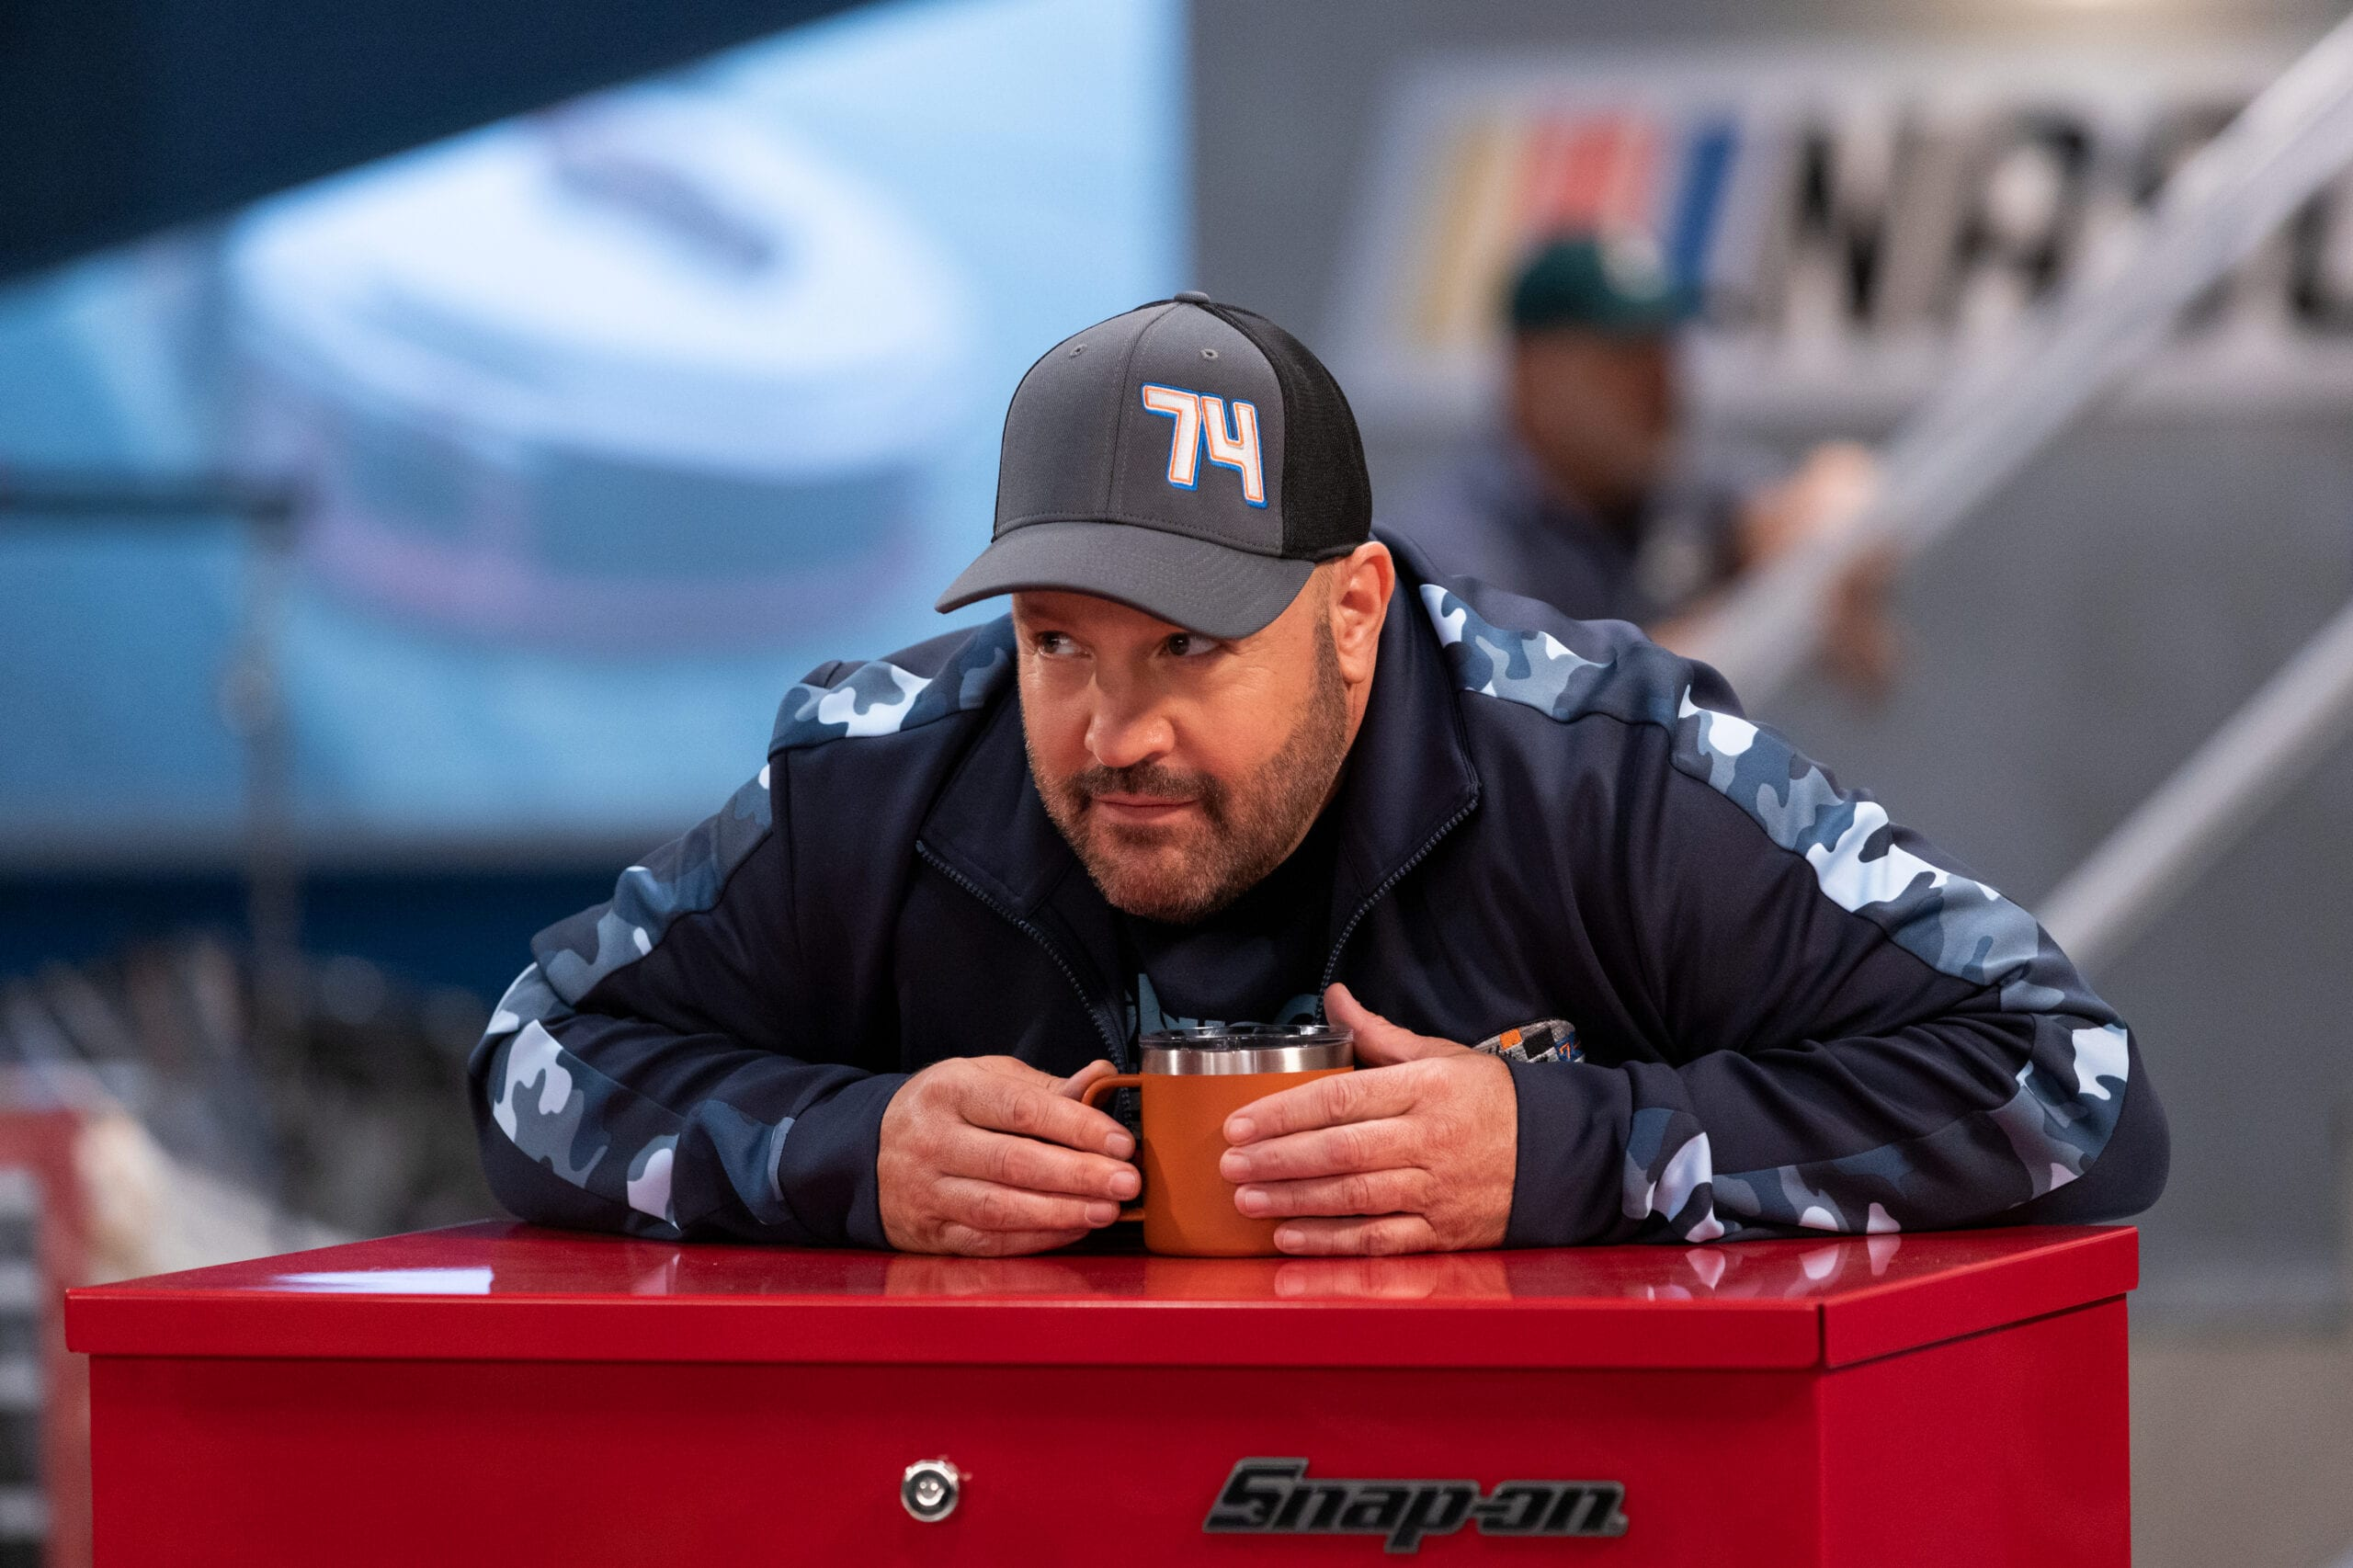 Kevin James in The Crew